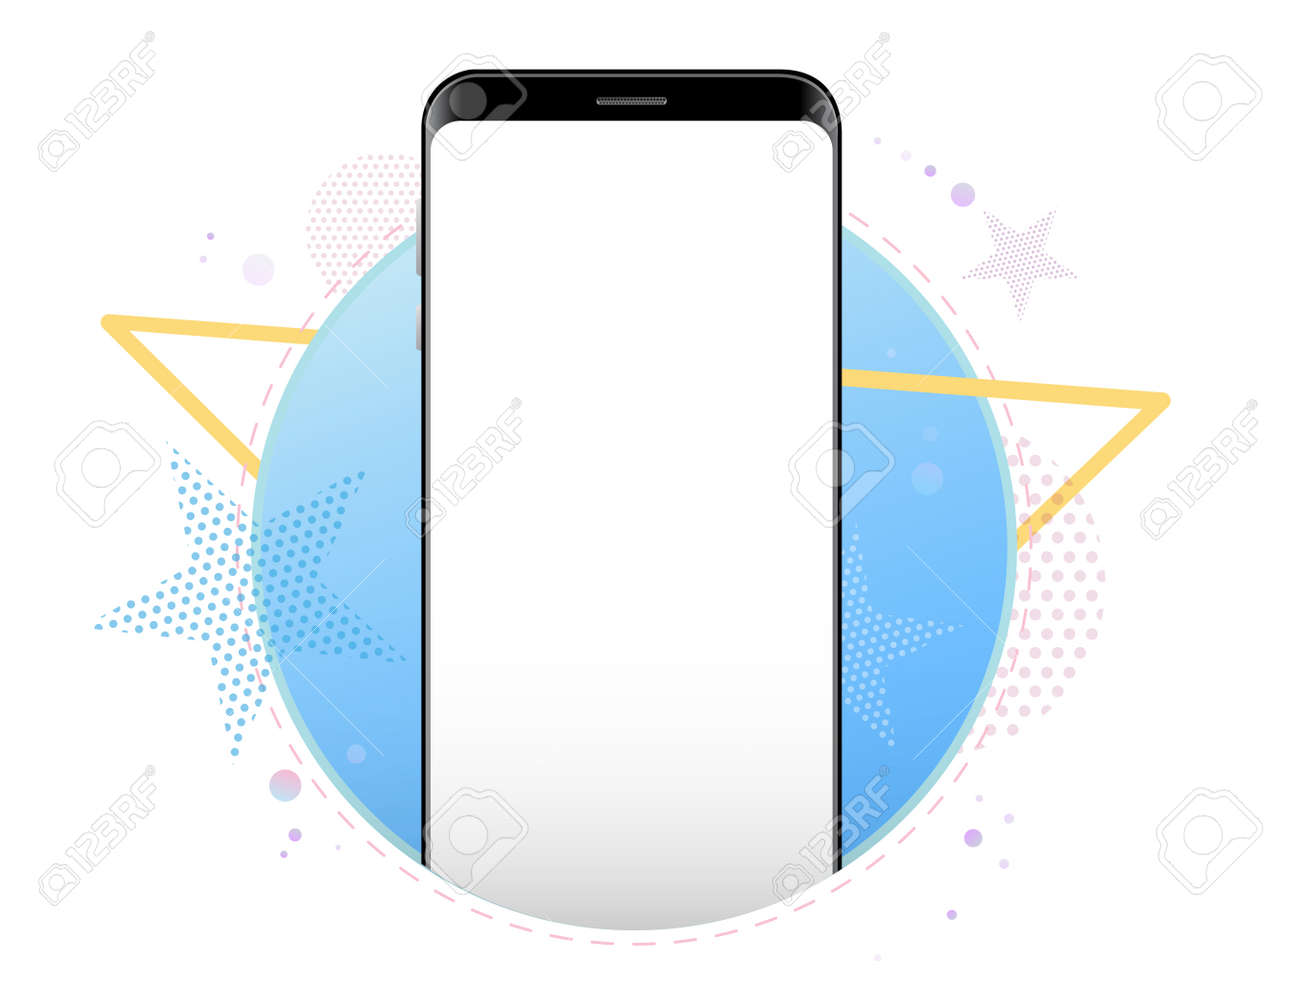 Mobile Phone Vector Mockup With Geometric Abstract Background. Frameless Black Smartphone Front View. - 153957465